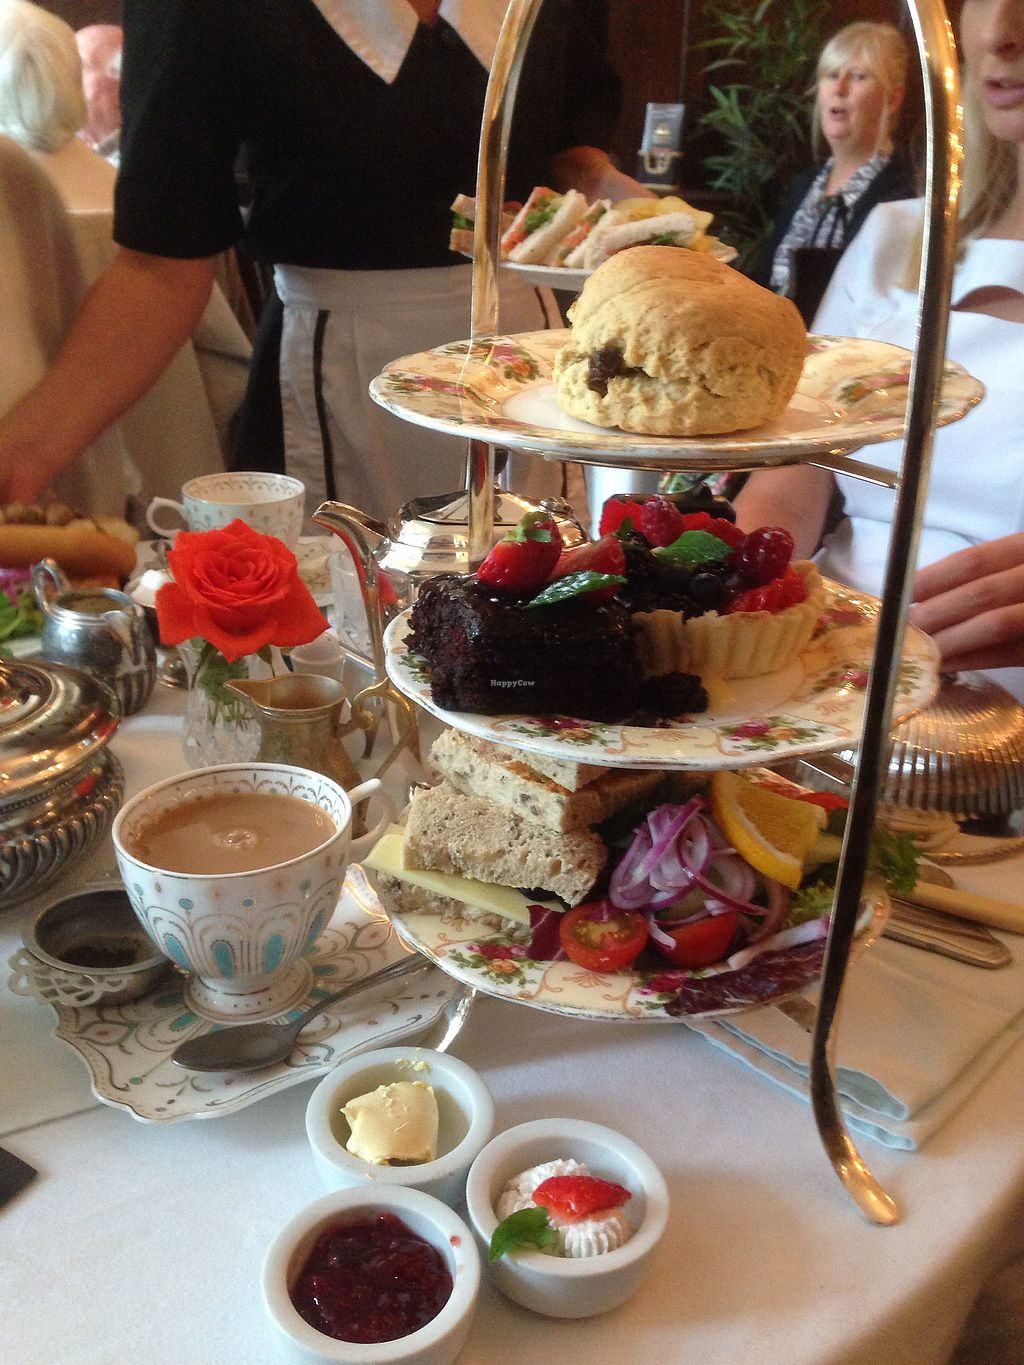 "Photo of The Westminster Tea Rooms   by <a href=""/members/profile/Toniab"">Toniab</a> <br/>vegan cream tea  <br/> June 30, 2017  - <a href='/contact/abuse/image/79483/275115'>Report</a>"